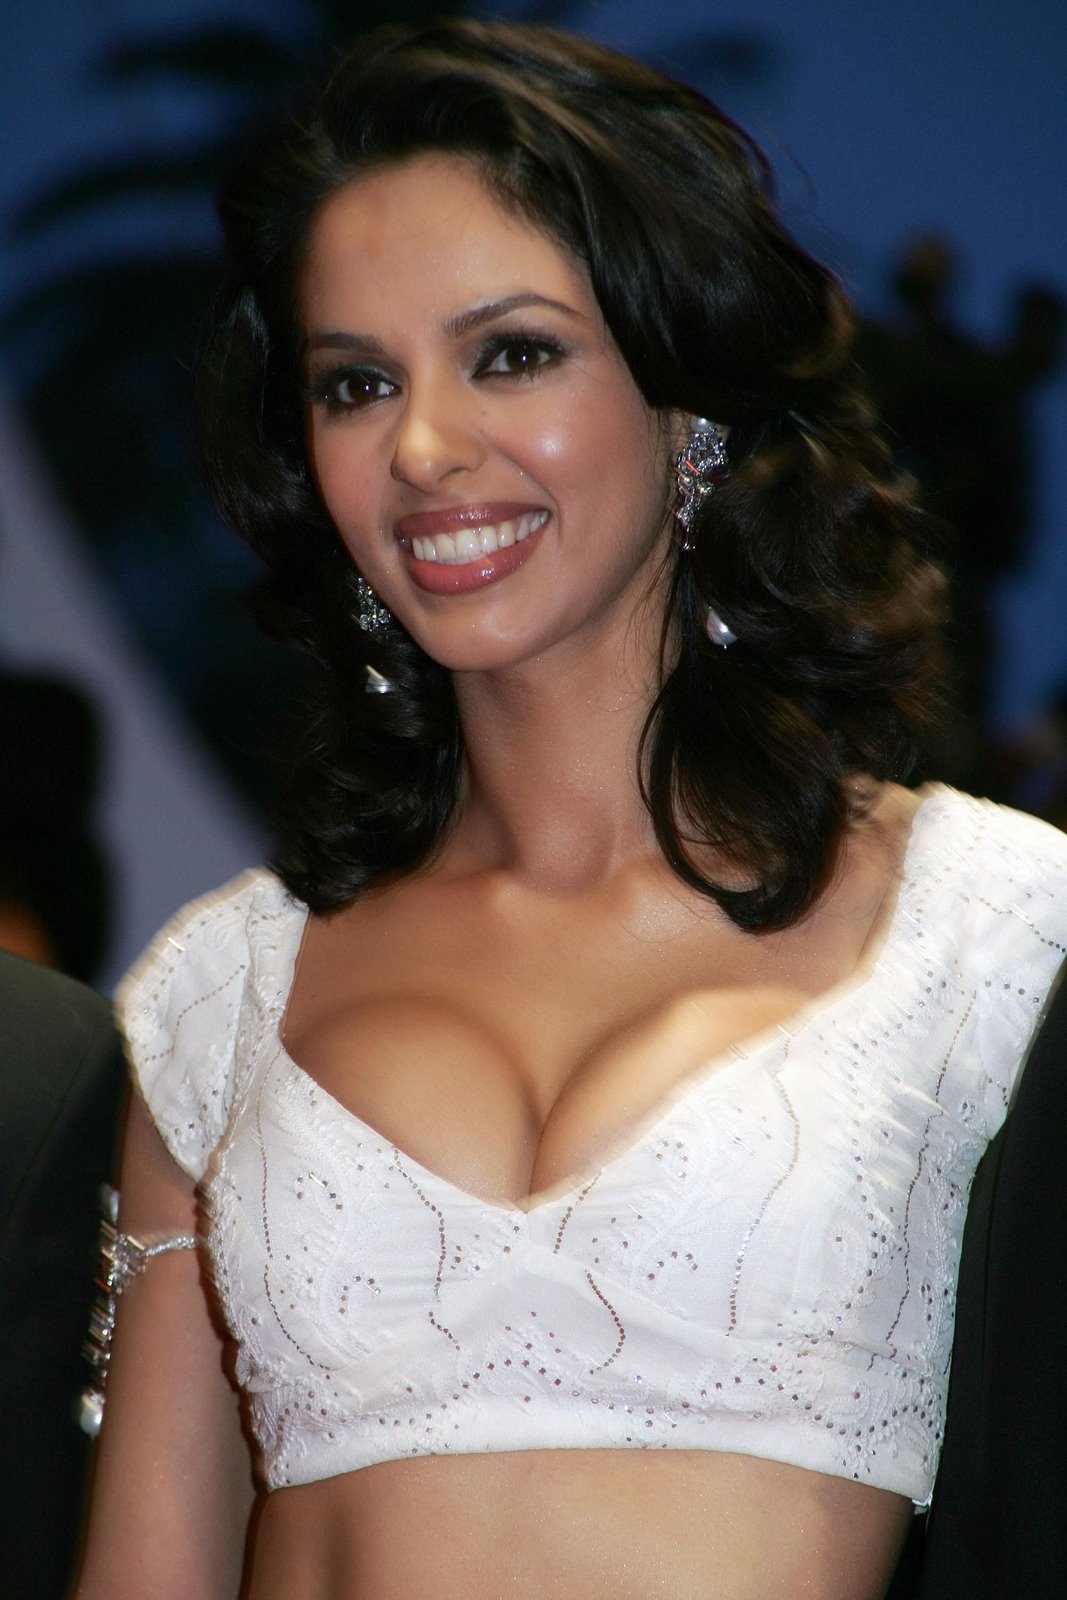 Cleavage Mallika Sherawat naked (94 photos), Topless, Is a cute, Instagram, in bikini 2017